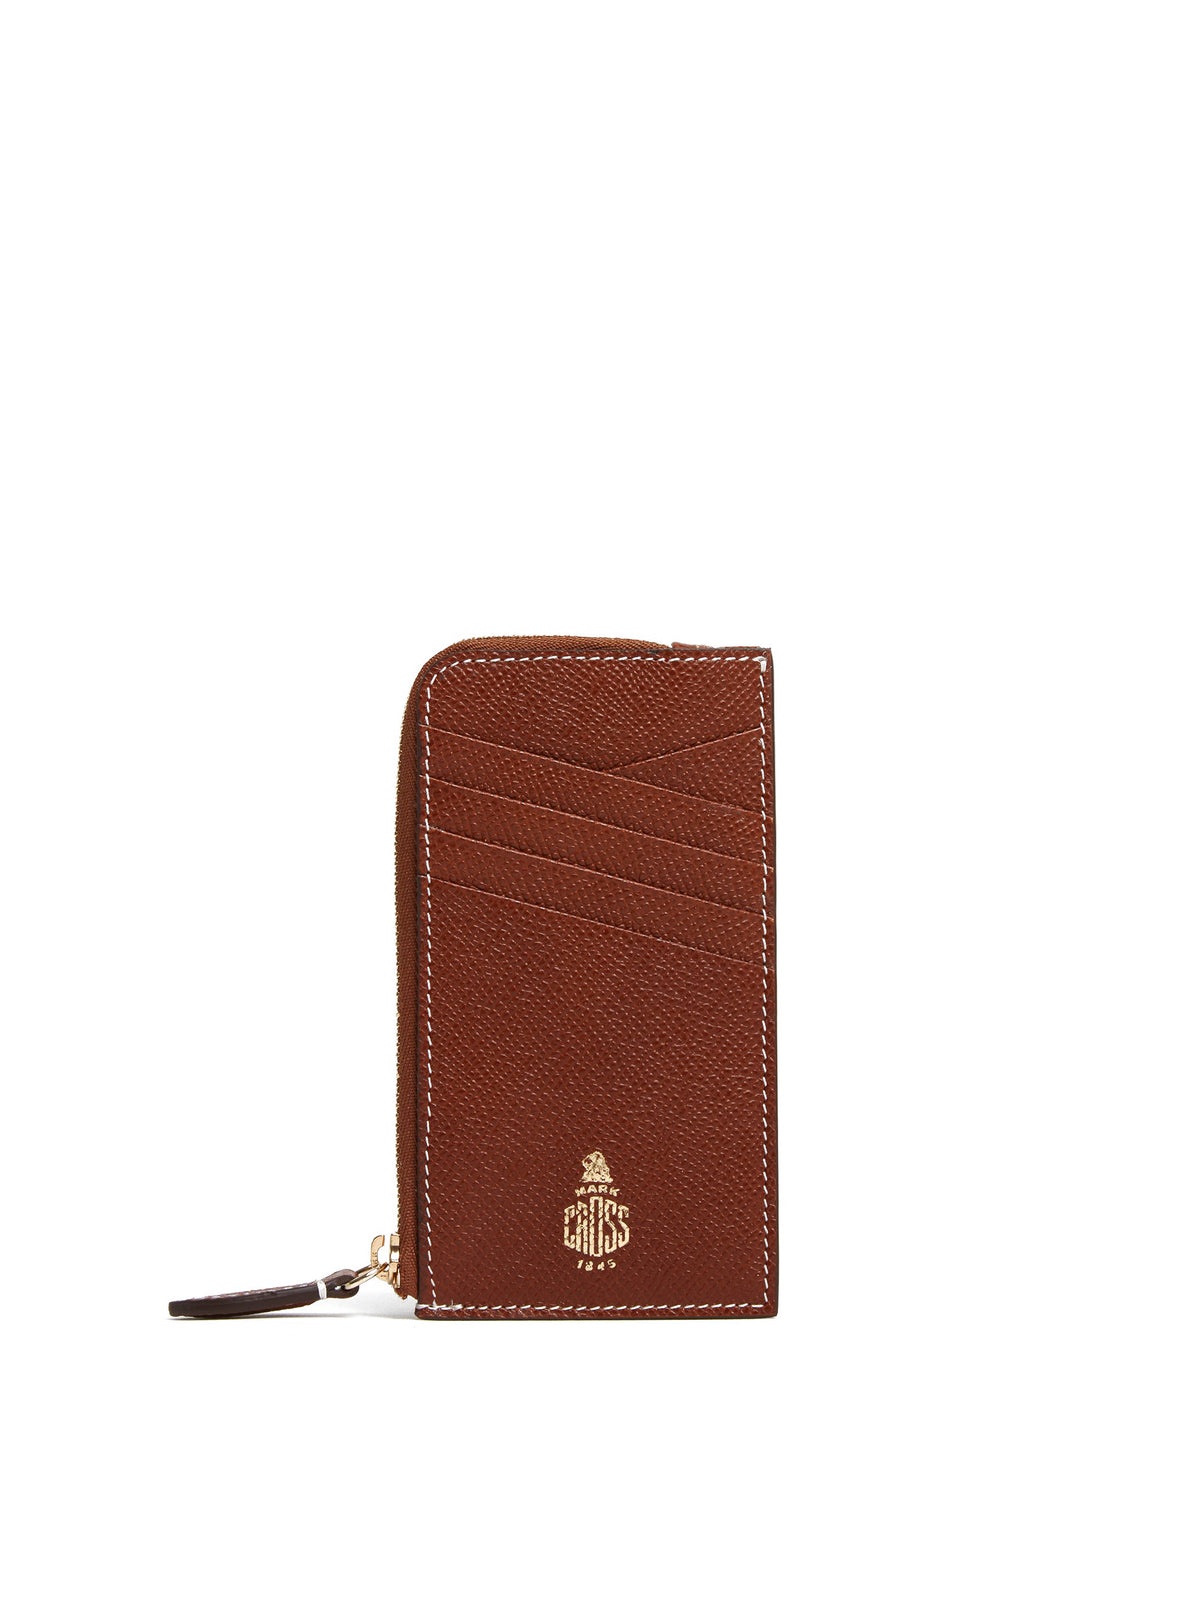 Mark Cross Leather Zip Card Case Saffiano Acorn Front